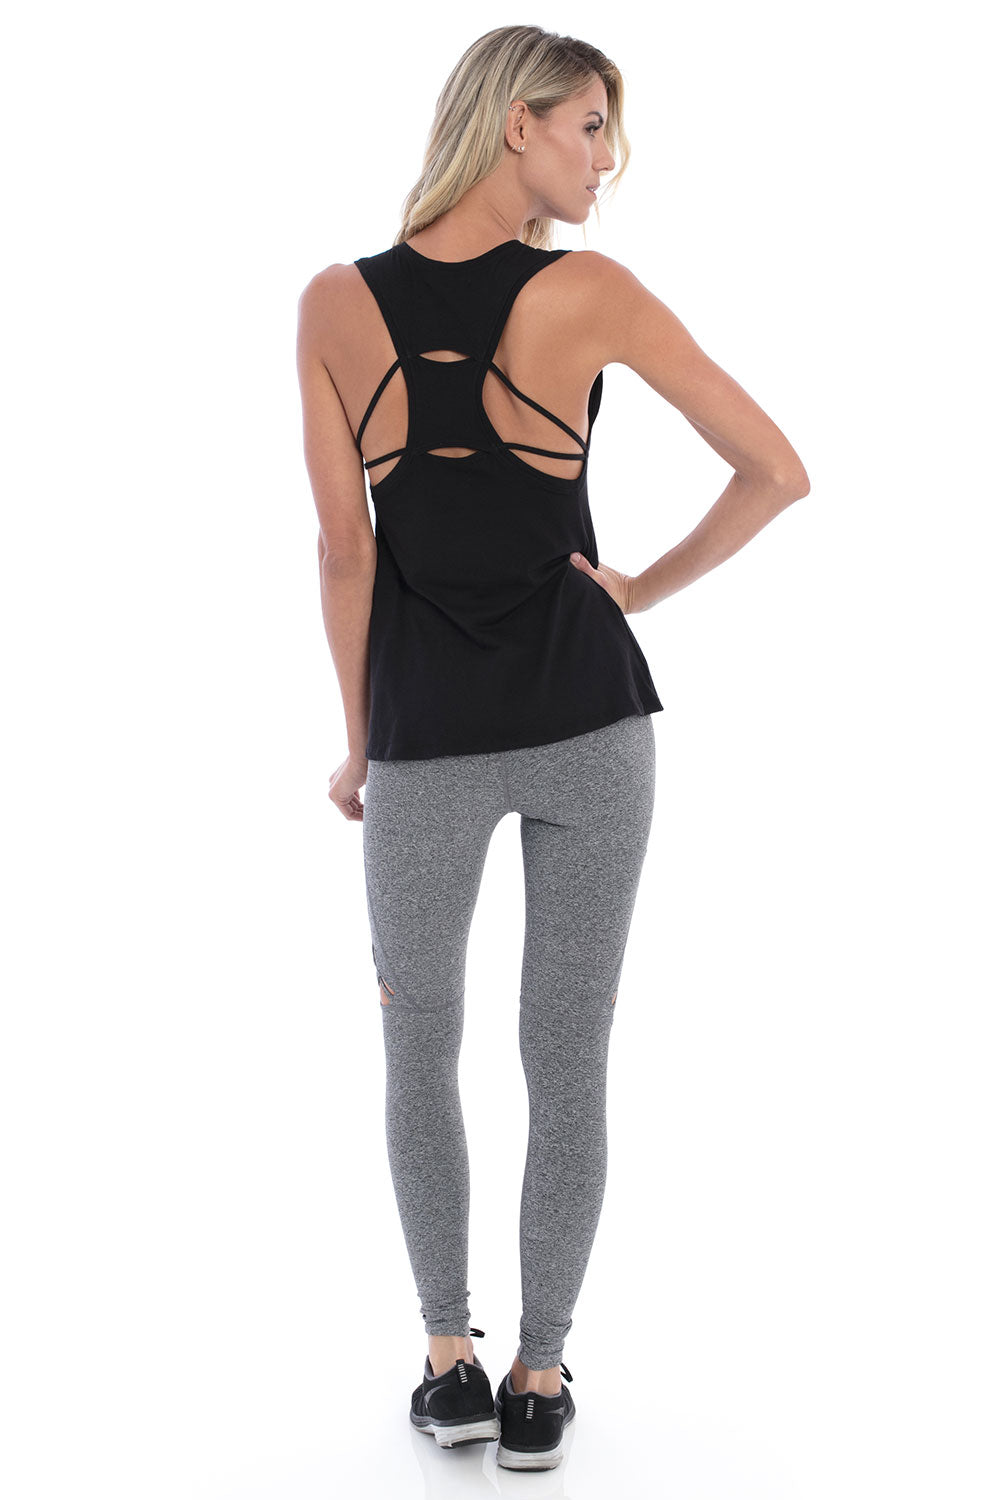 Track & Bliss Keyhole Strappy Tank - Black - Sculptique